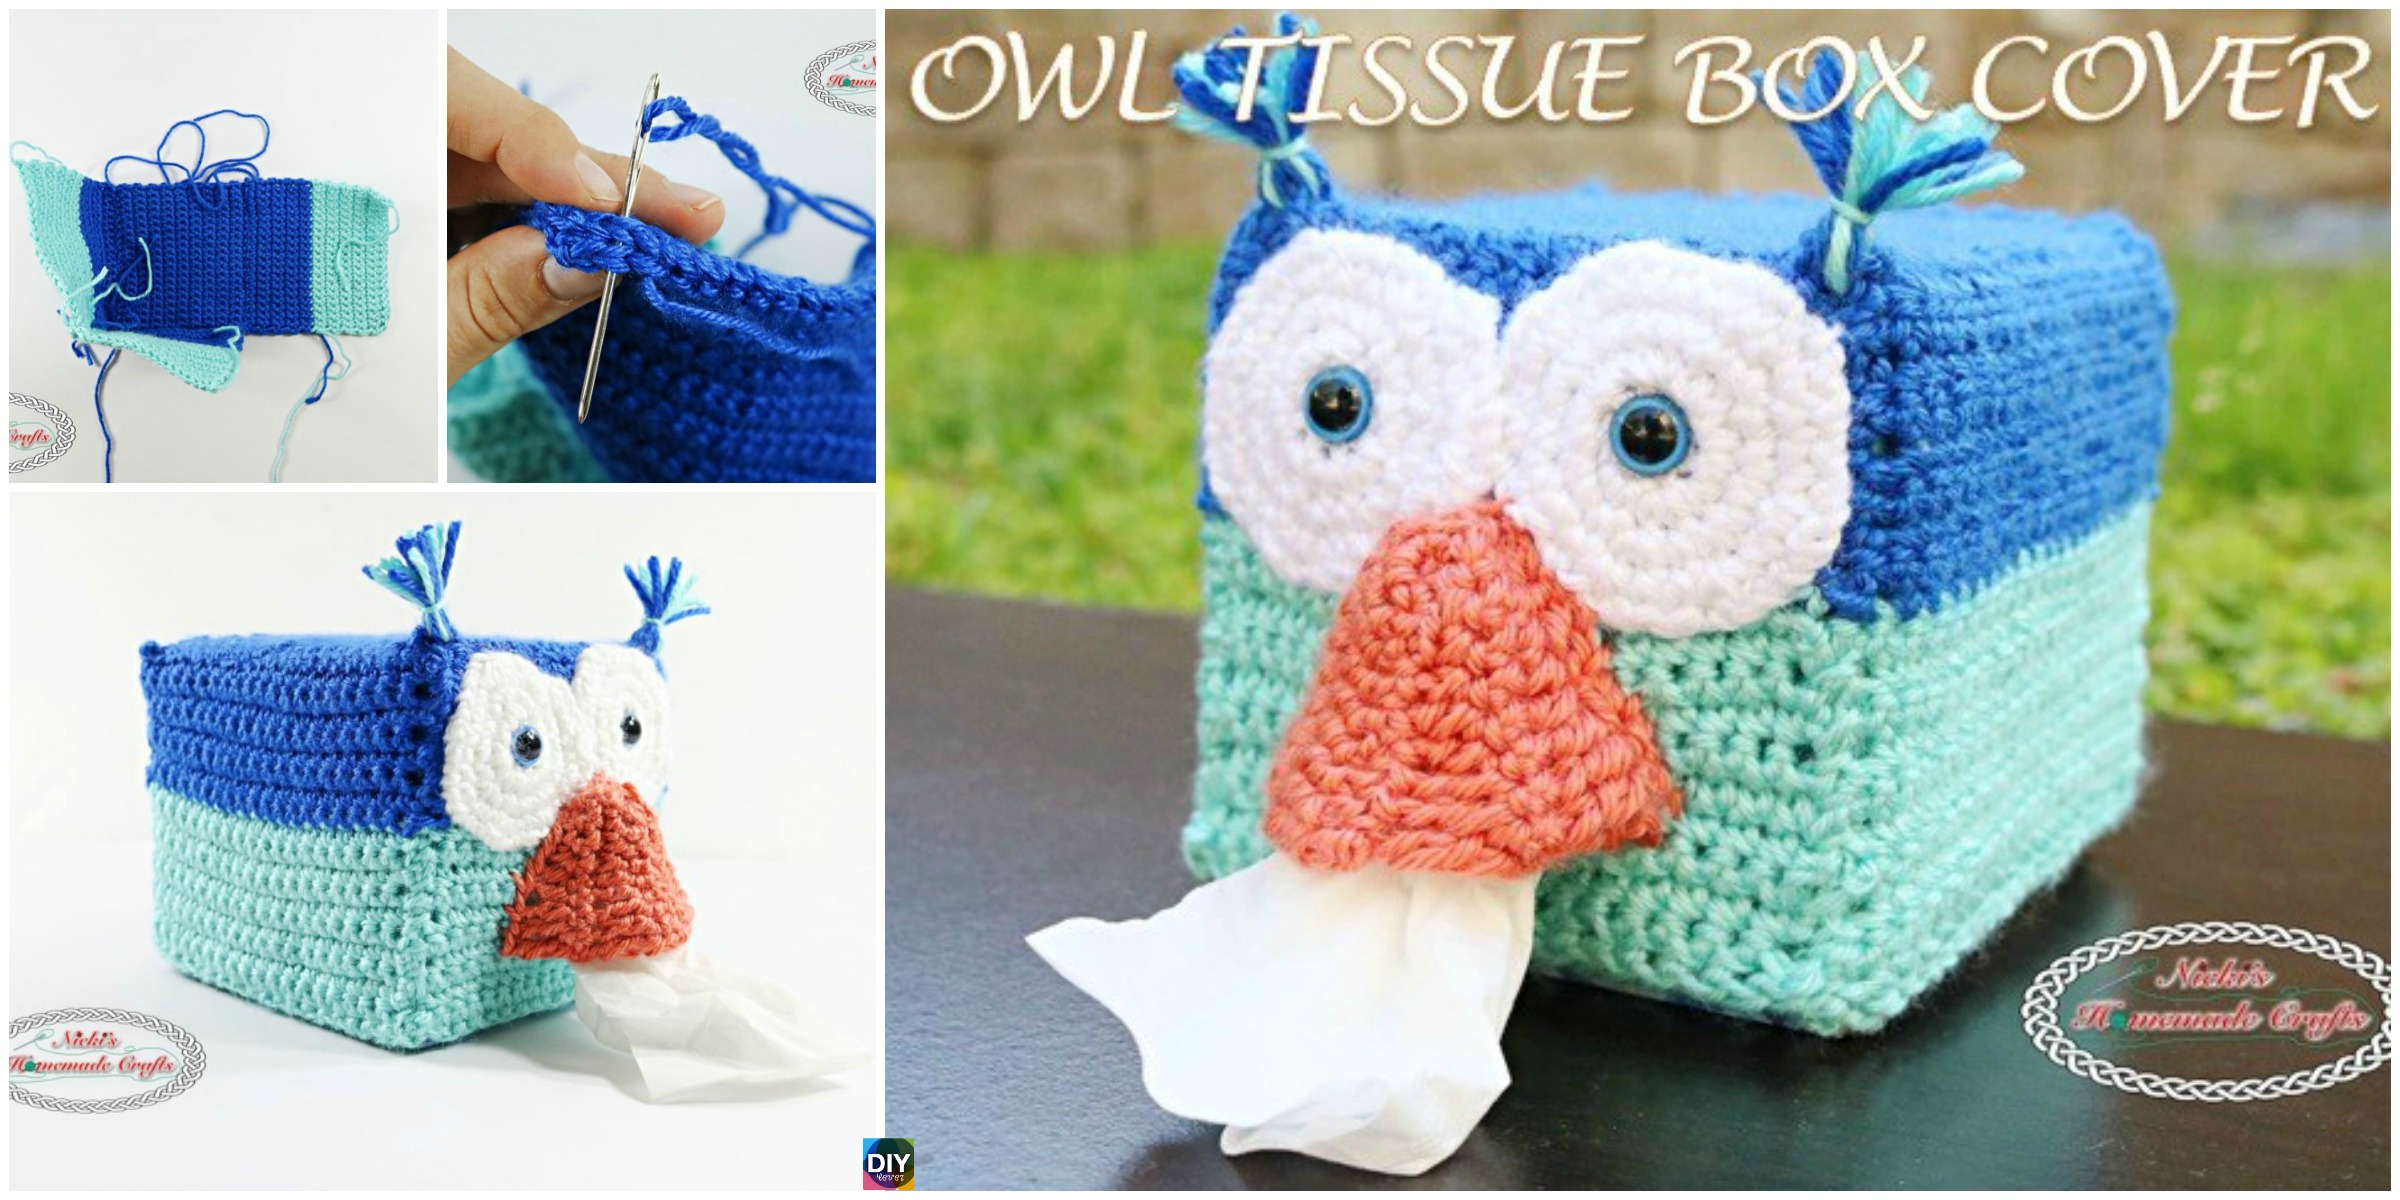 Crochet Owl Tissue Box Cover – Free Pattern